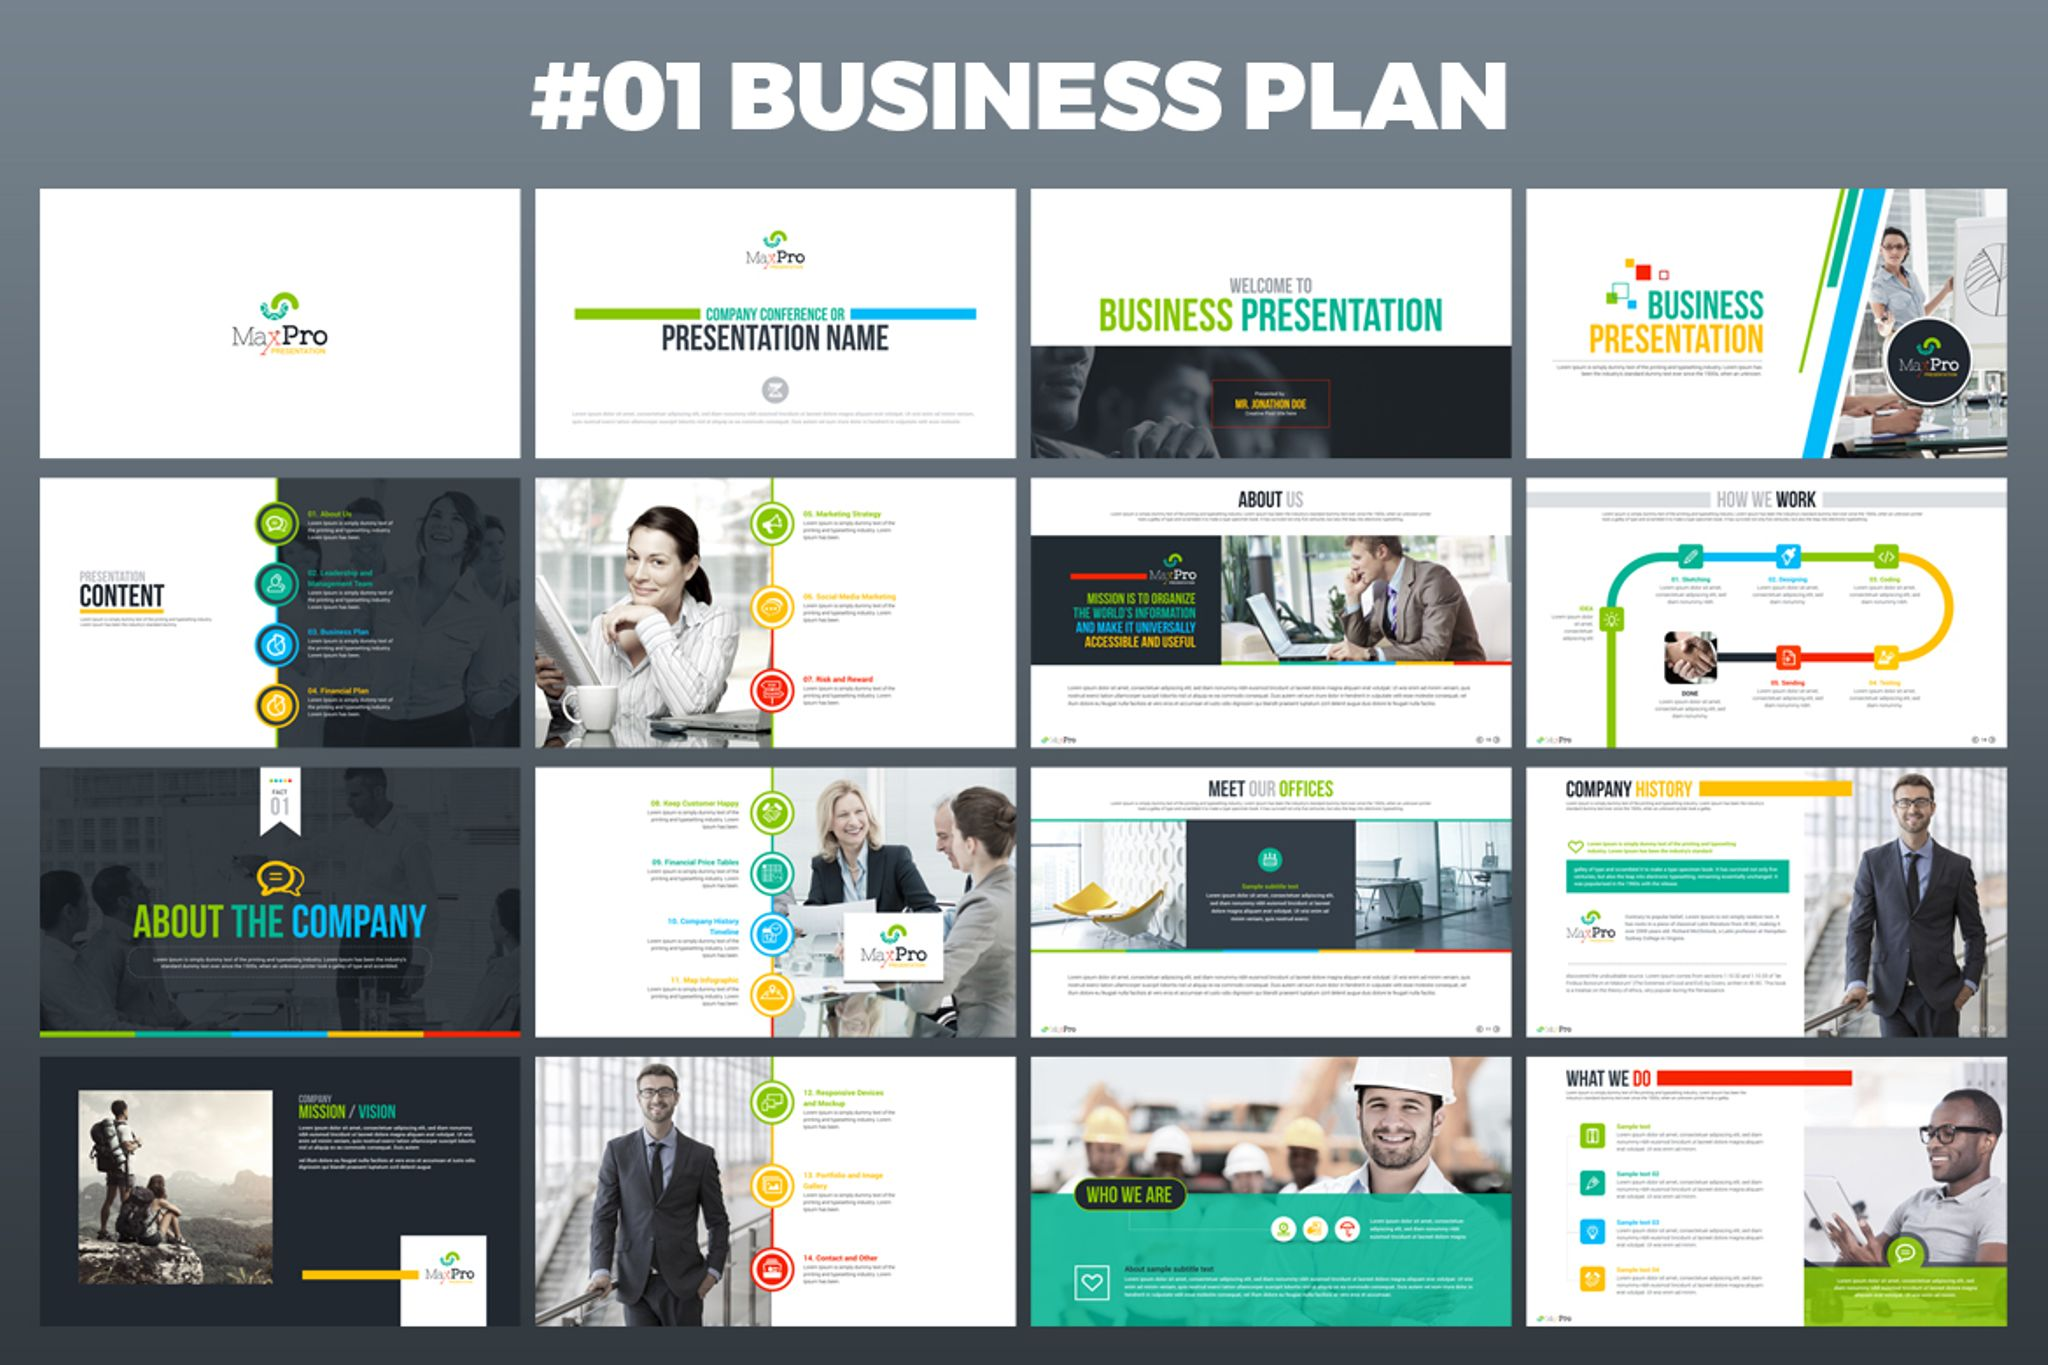 Maxpro business plan powerpoint template 66751 maxpro business plan powerpoint template big screenshot accmission Image collections